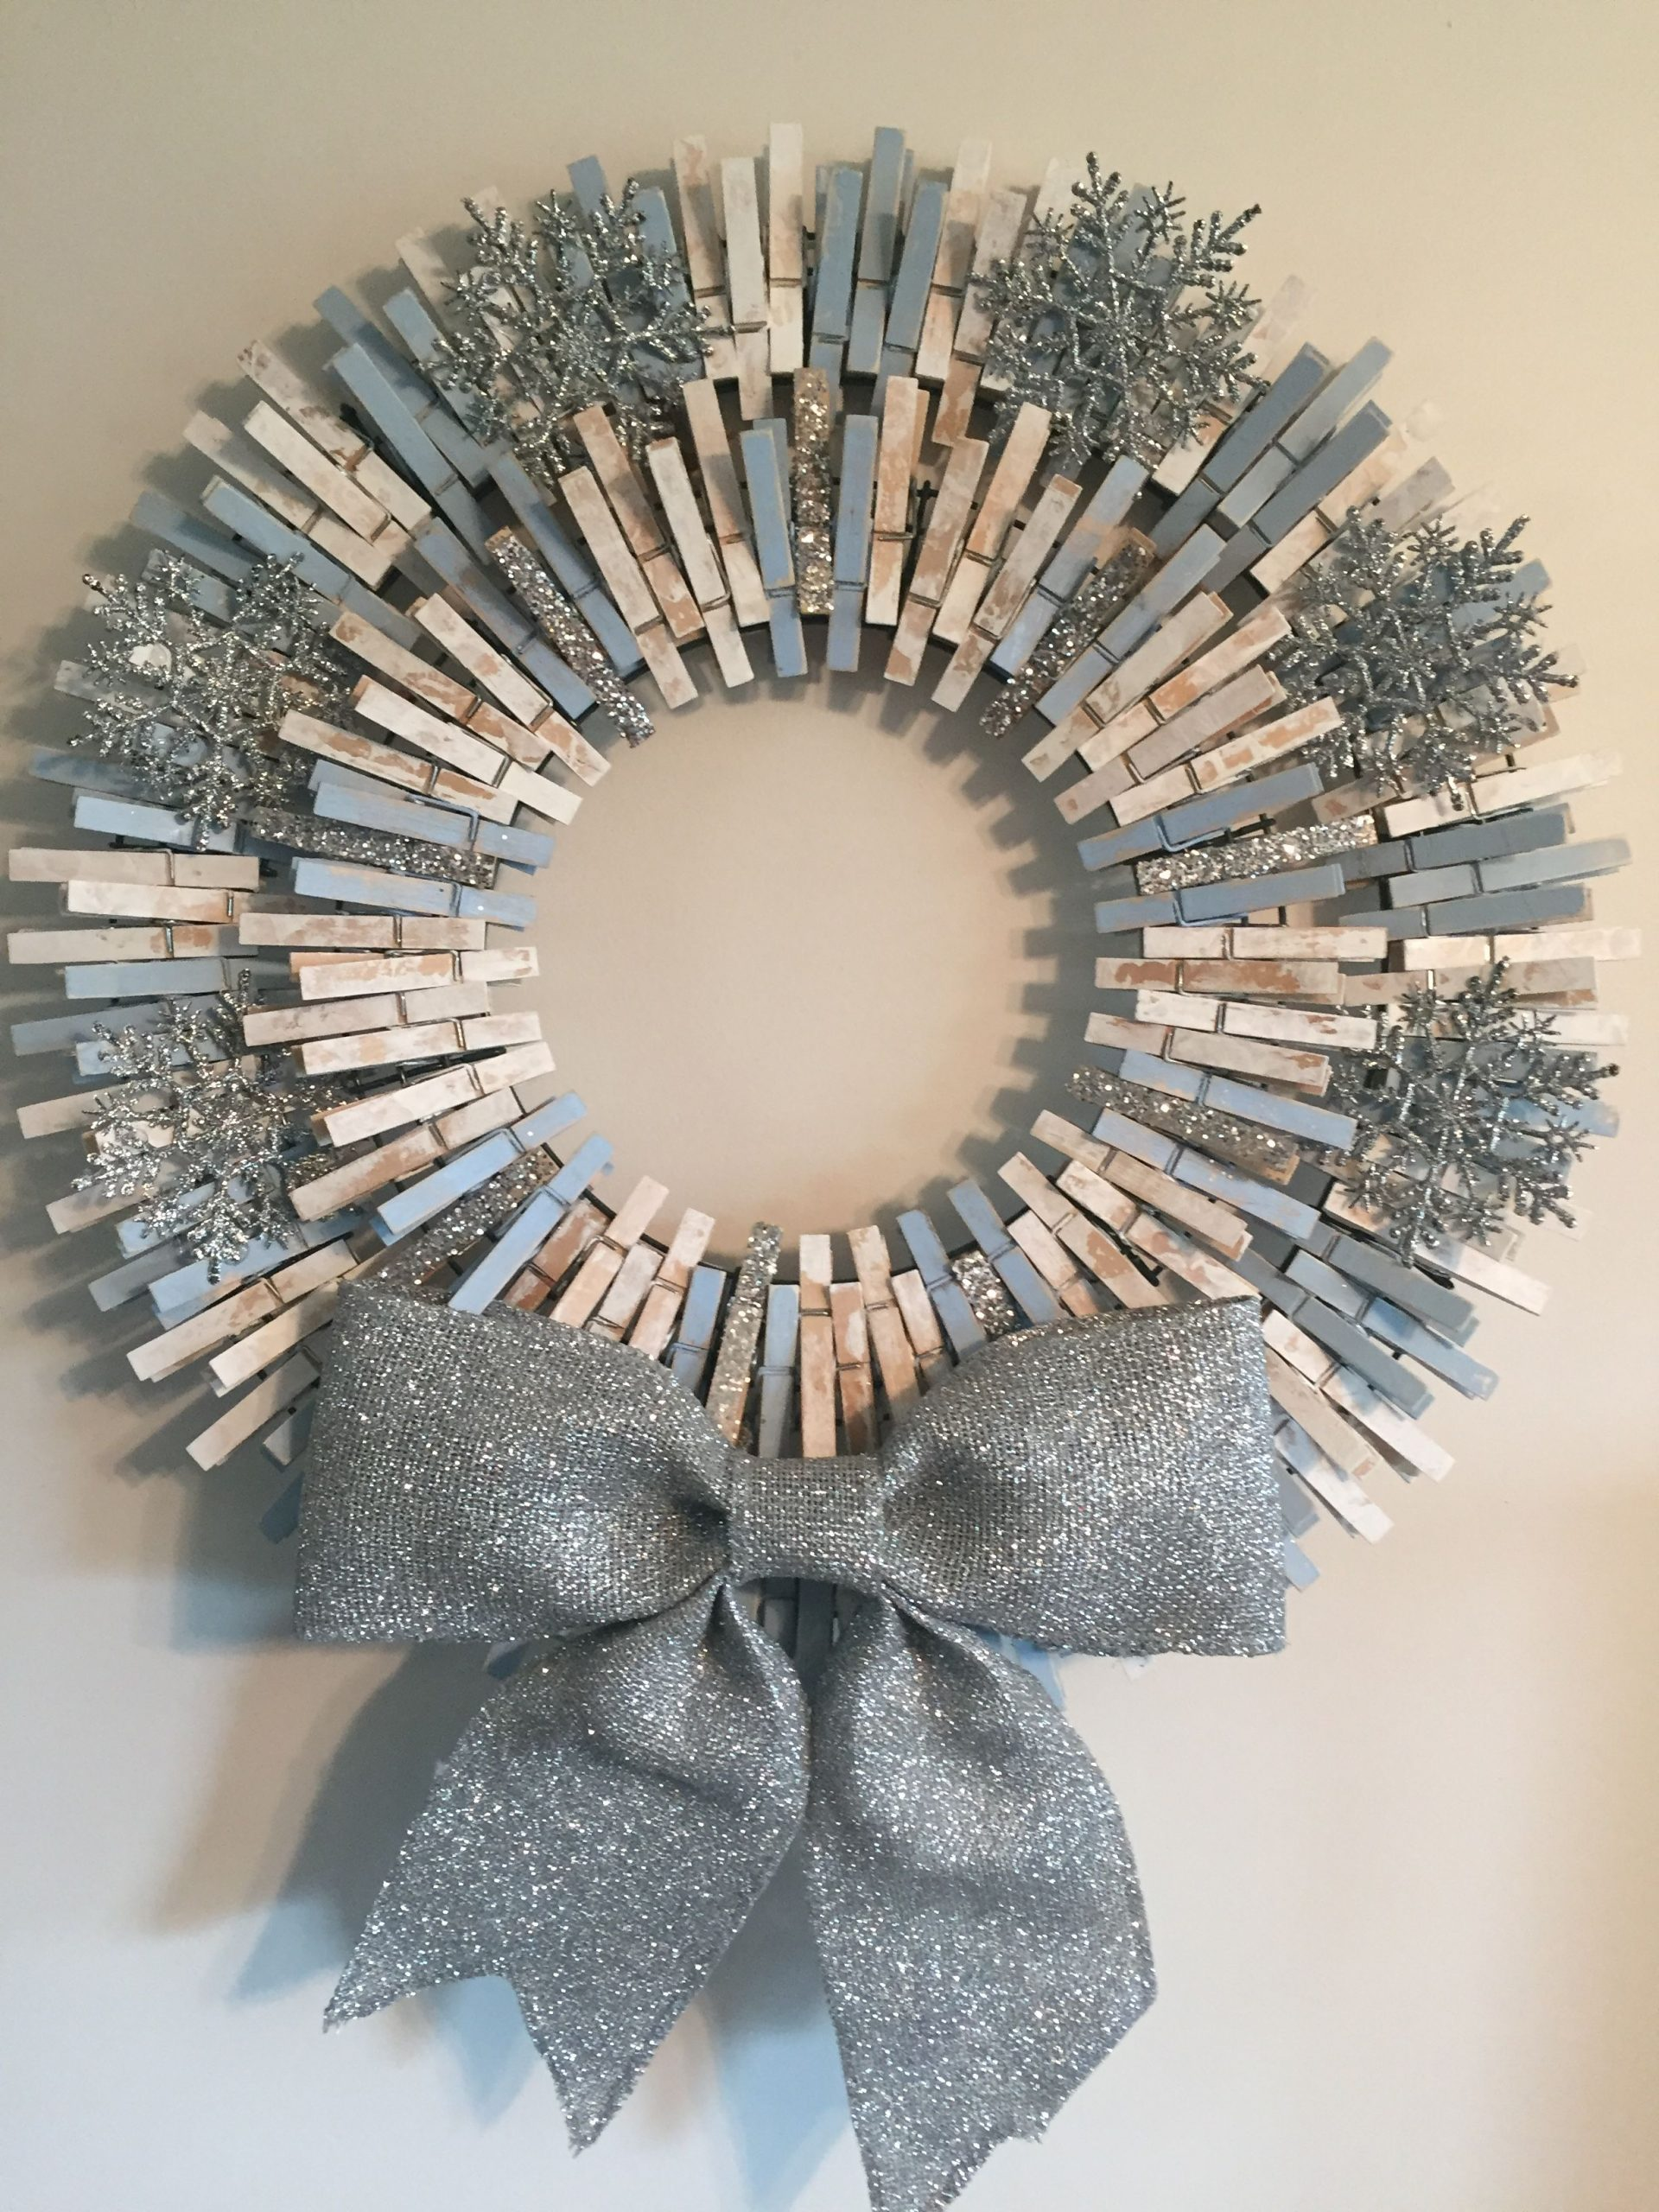 Snowflake Christmas Clothespin Wreath #diy #clothespin #wreath #crafts #decorhomeideas